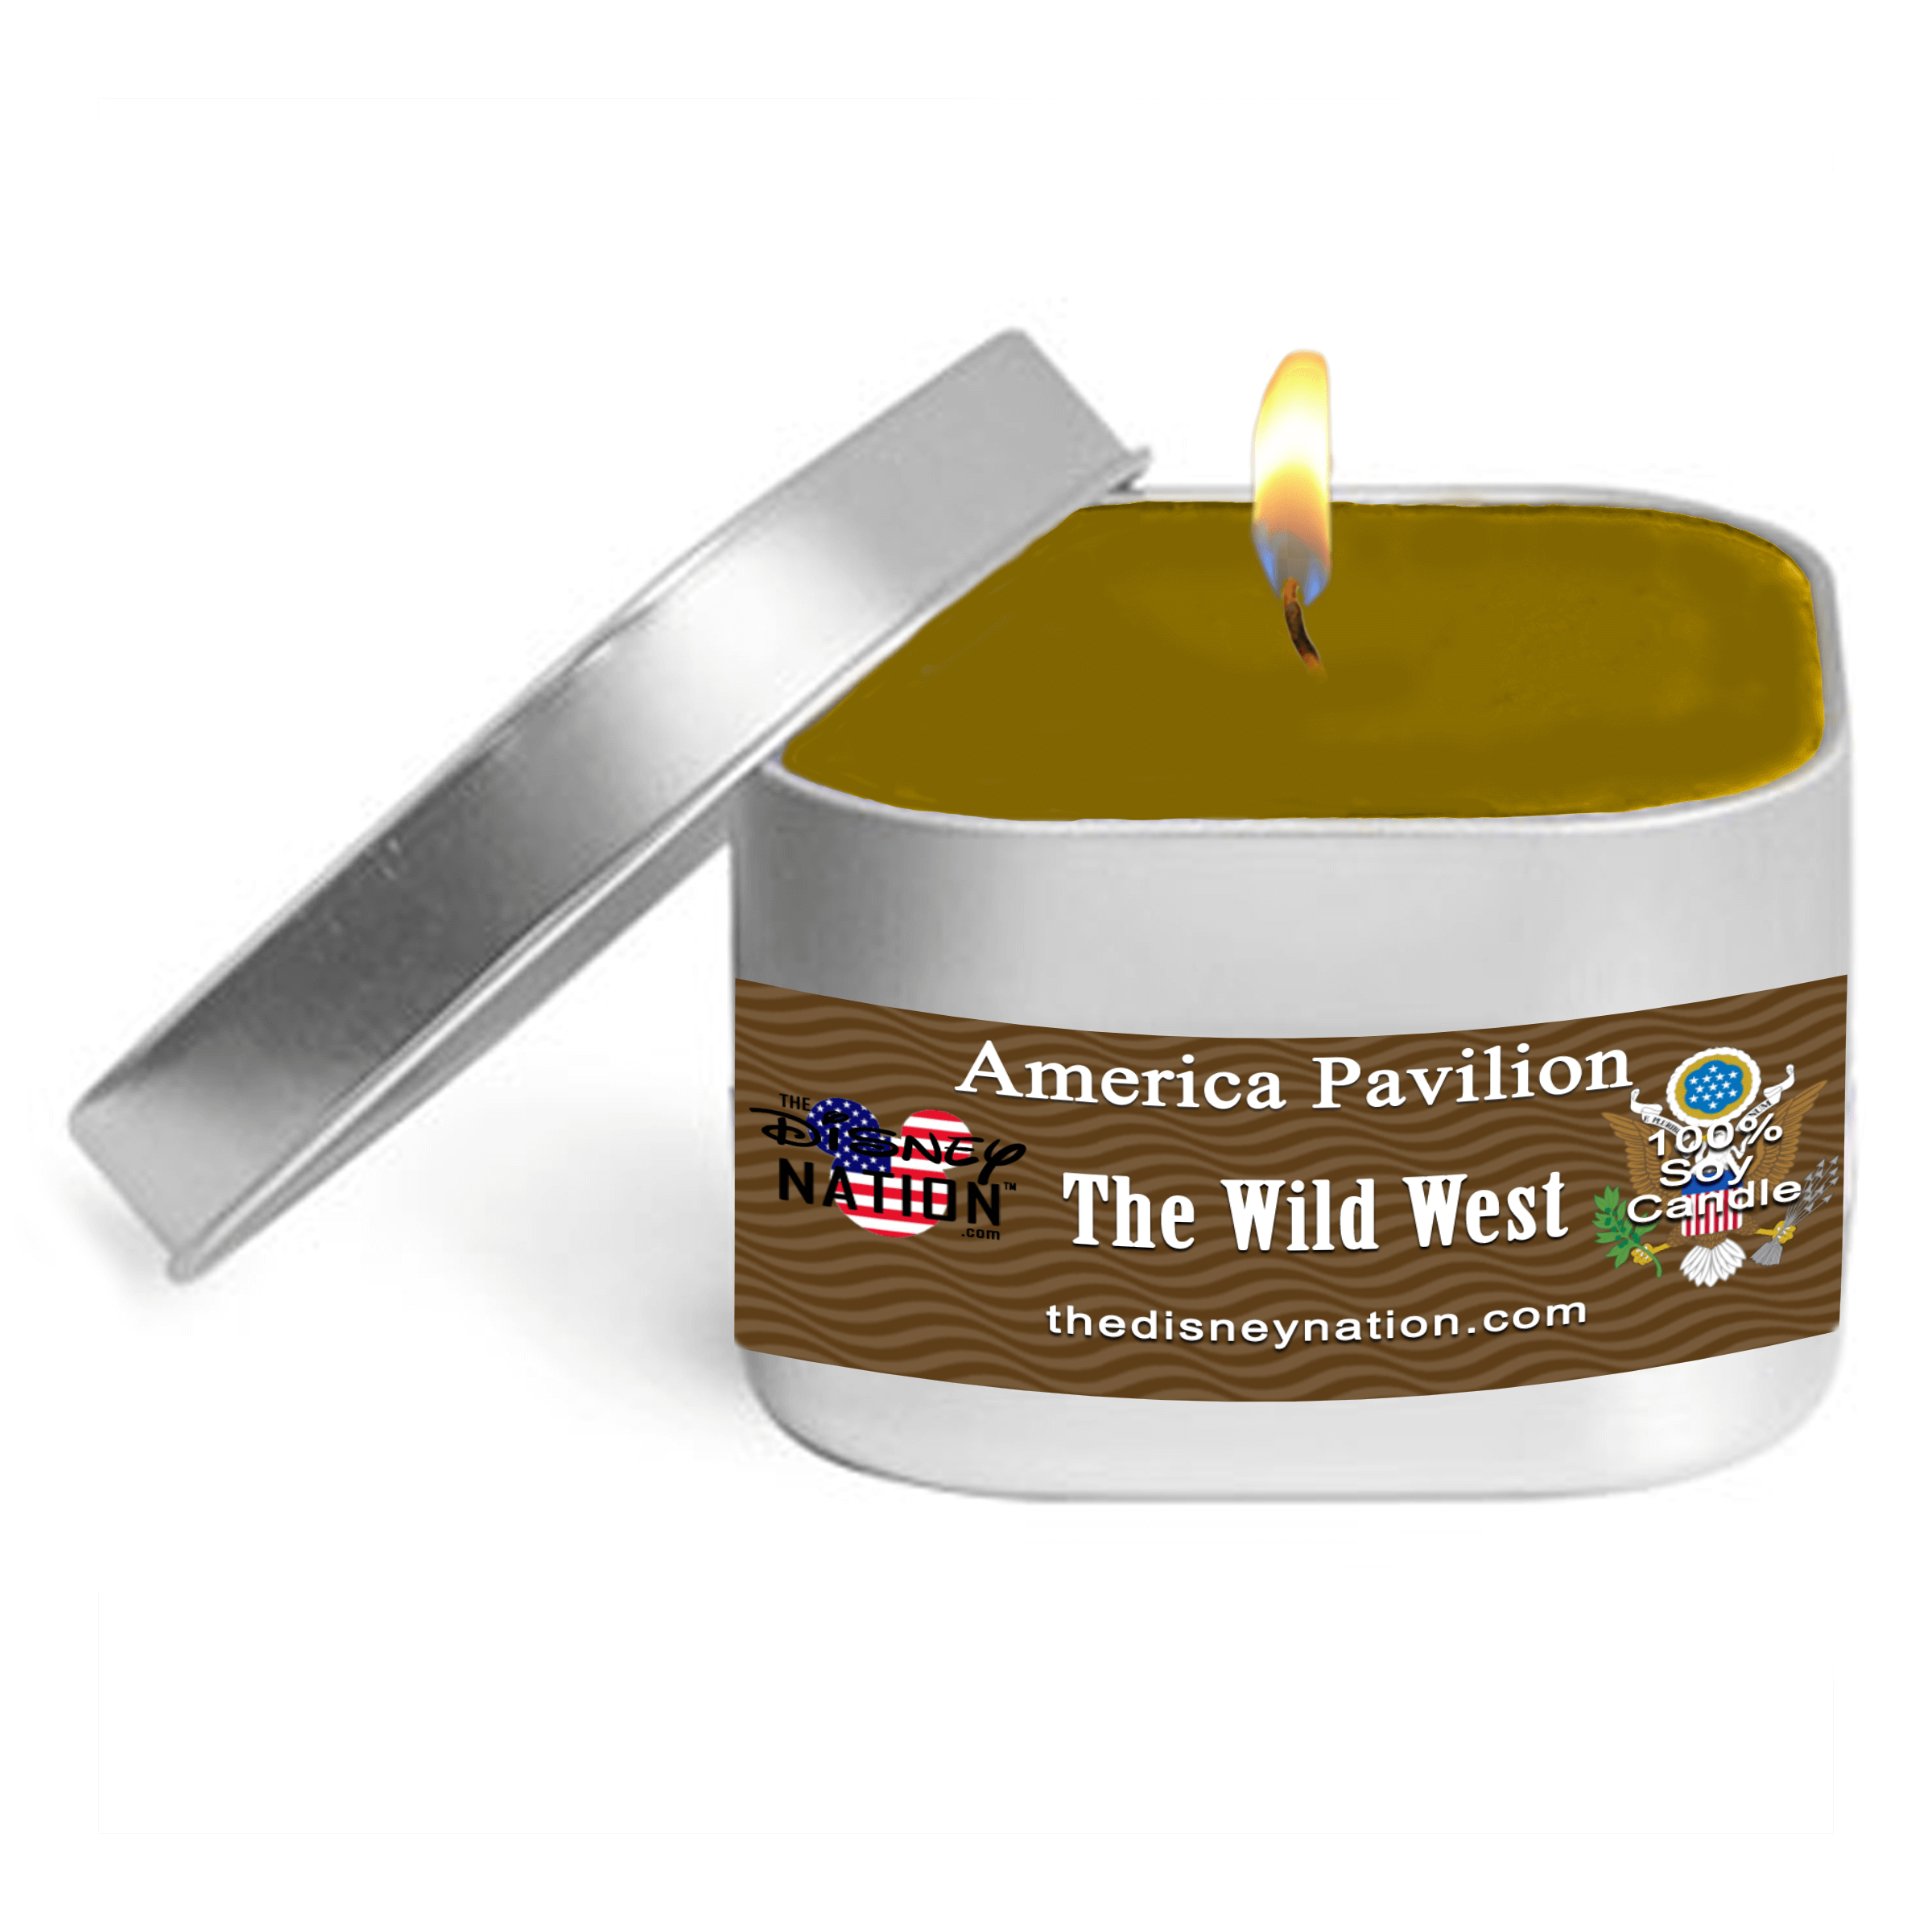 American Pavilion - The Wild West Fragrance Candle Small